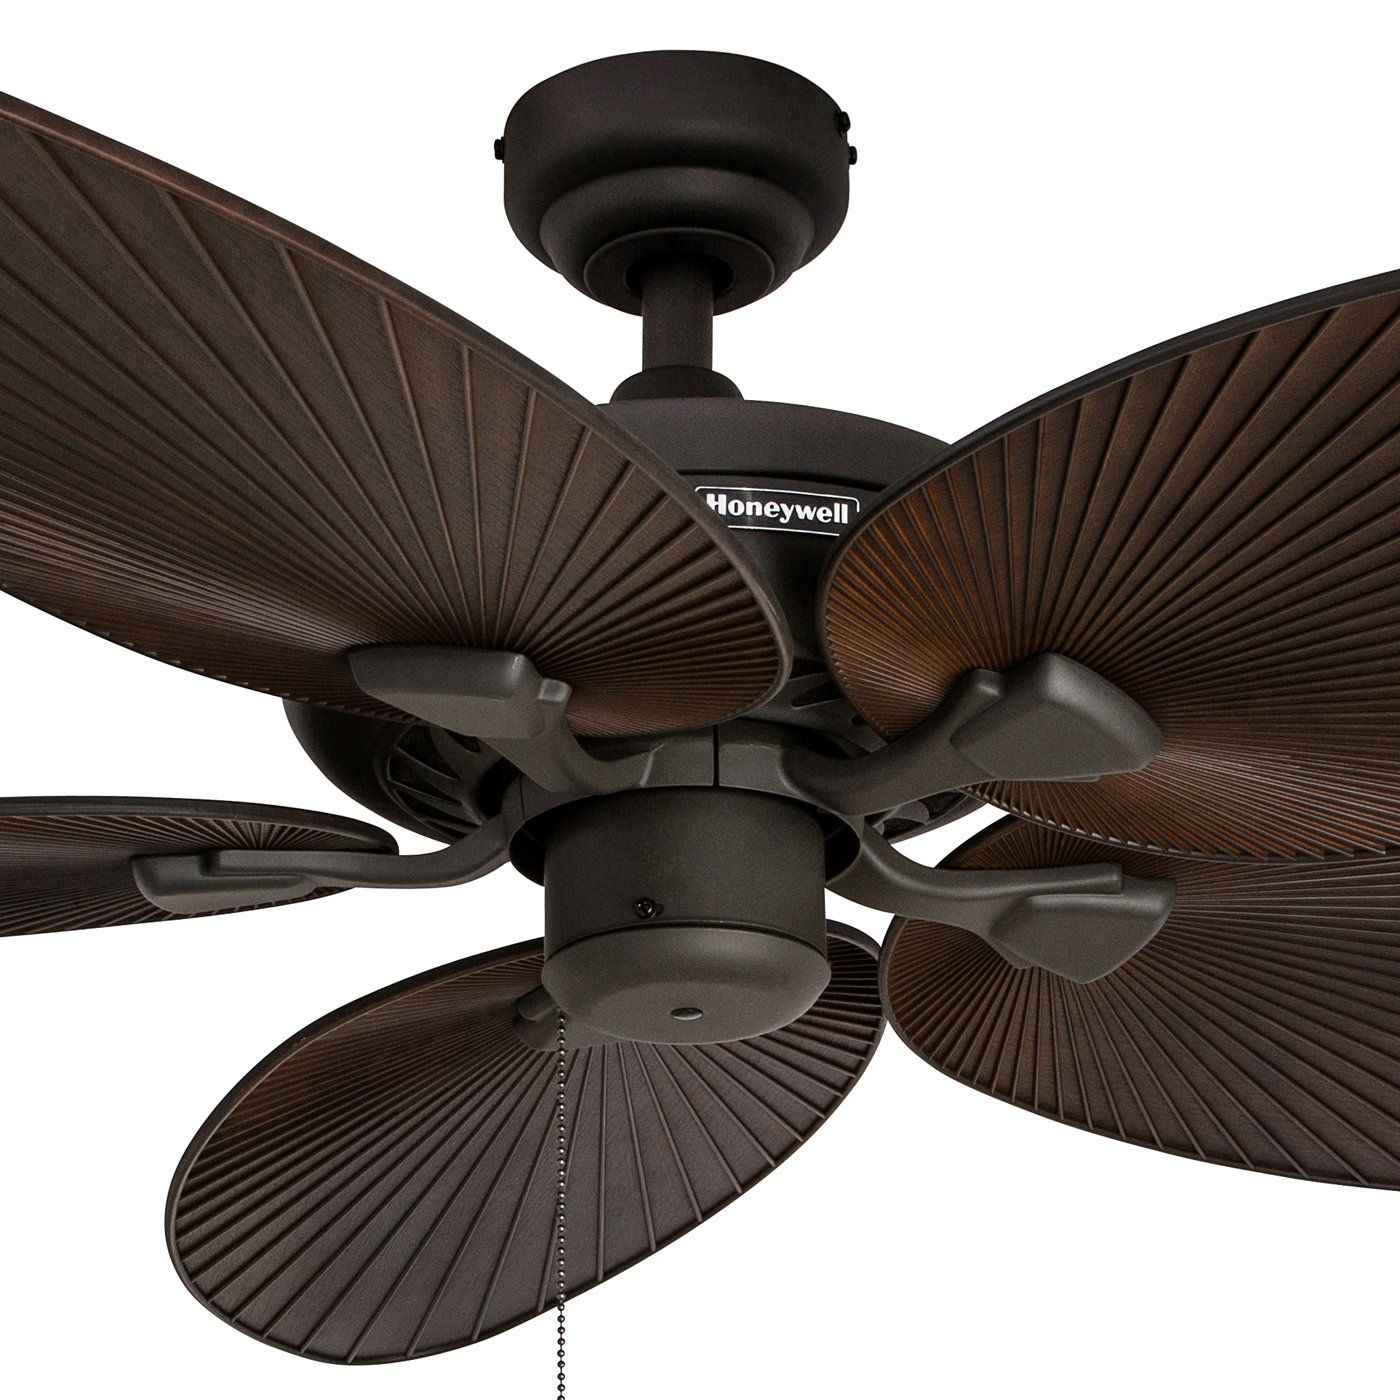 Honeywell Palm Island 52inch Tropical Ceiling Fan Five Palm Leaf Blades Indoor Outdoor Damp Rated Bronze Bronze Ceiling Fan Ceiling Fan Outdoor Ceiling Fans